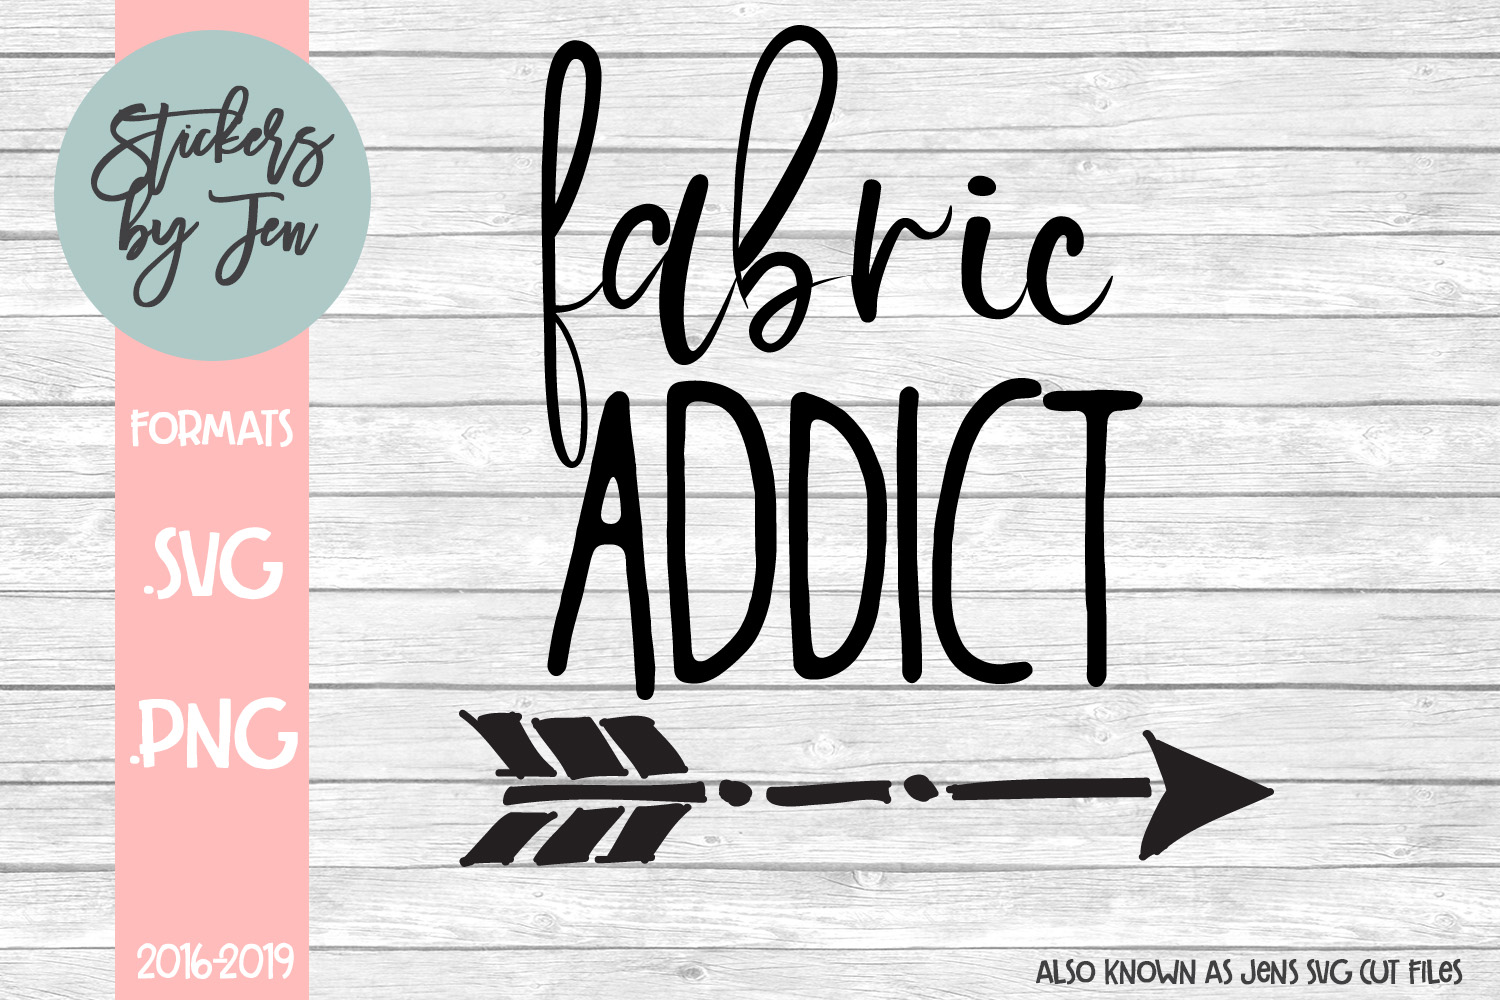 Download Free Fabric Addict Svg Graphic By Stickers By Jennifer Creative Fabrica for Cricut Explore, Silhouette and other cutting machines.